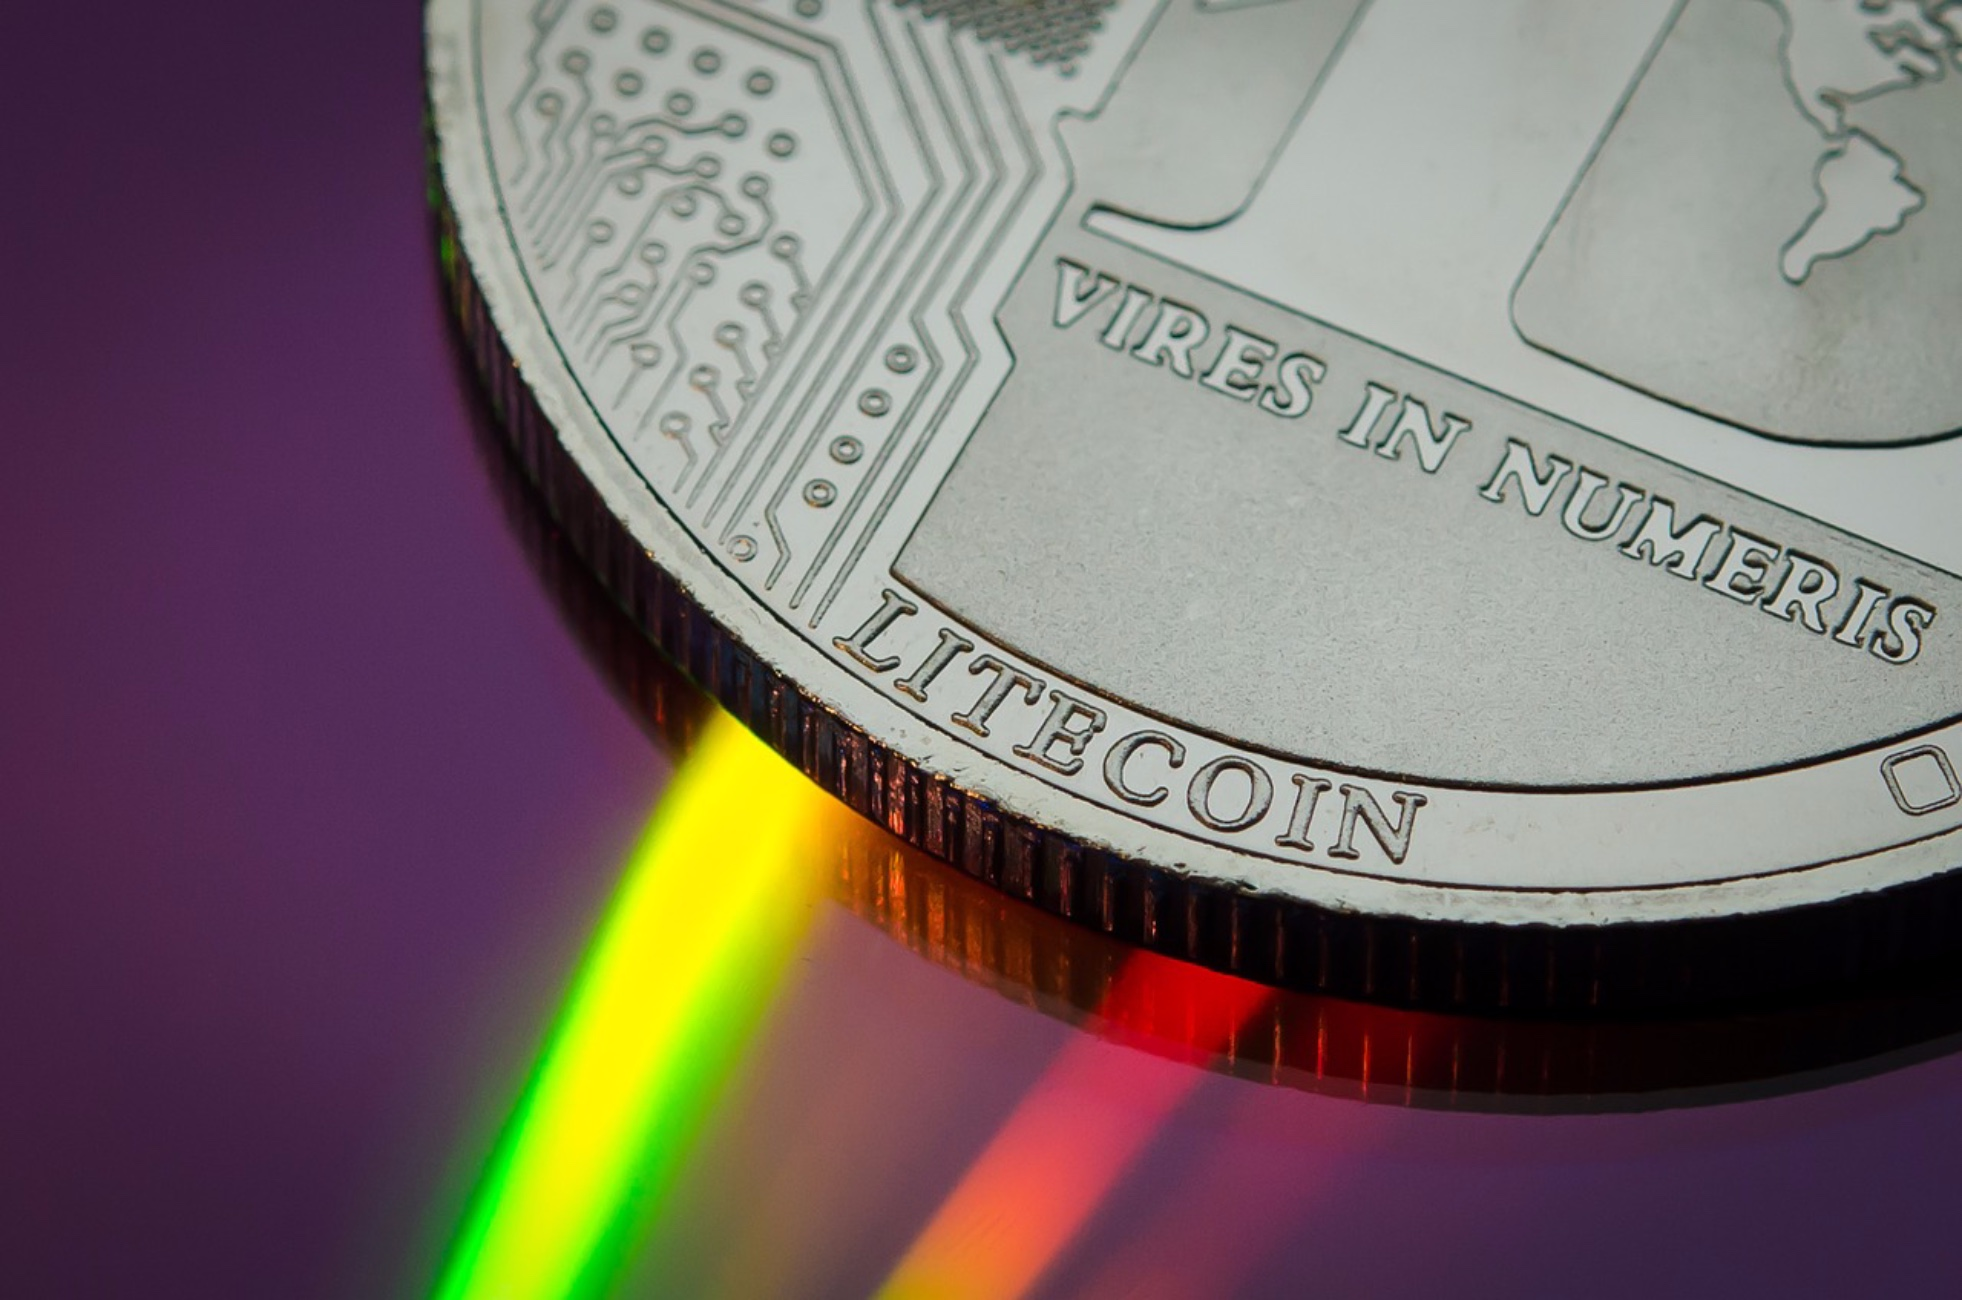 Litecoin reduces transaction fees by 10x